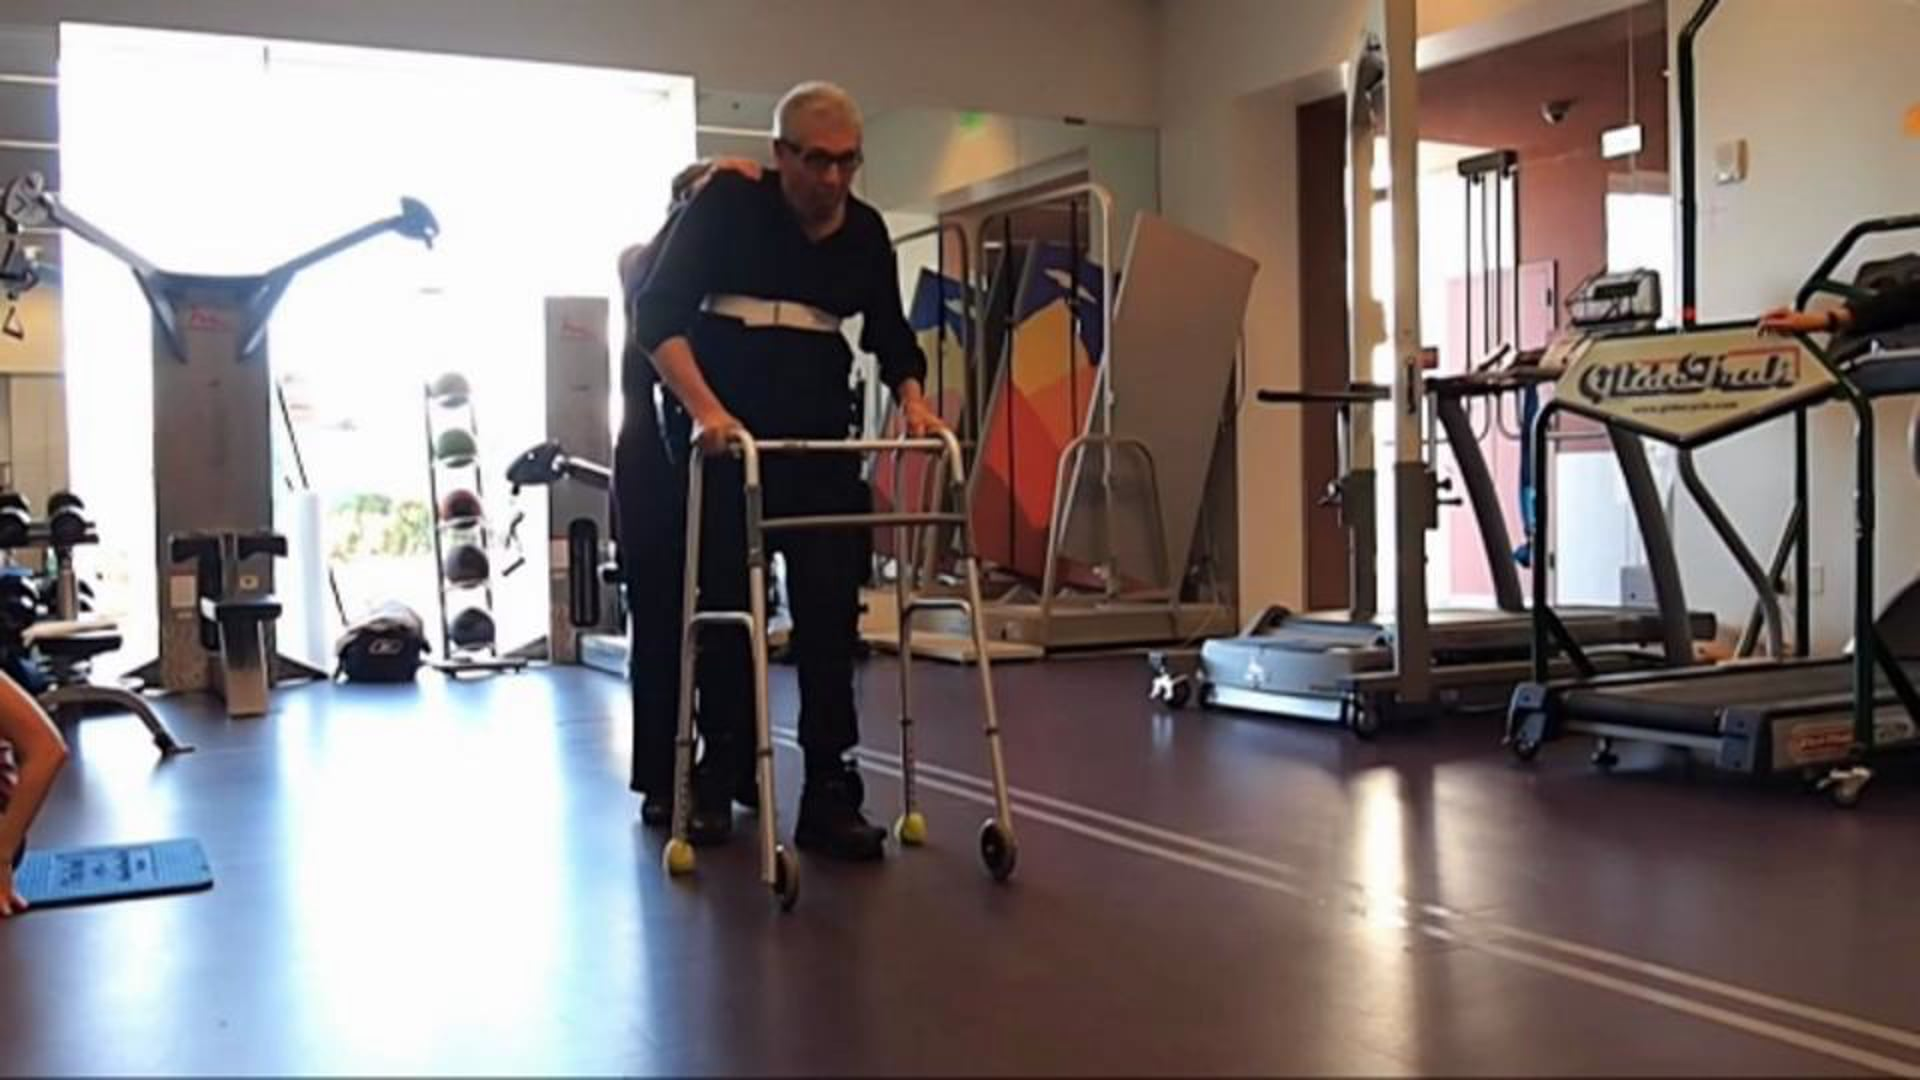 Kickstart helps user with spinal cord injury walk during physical therapy